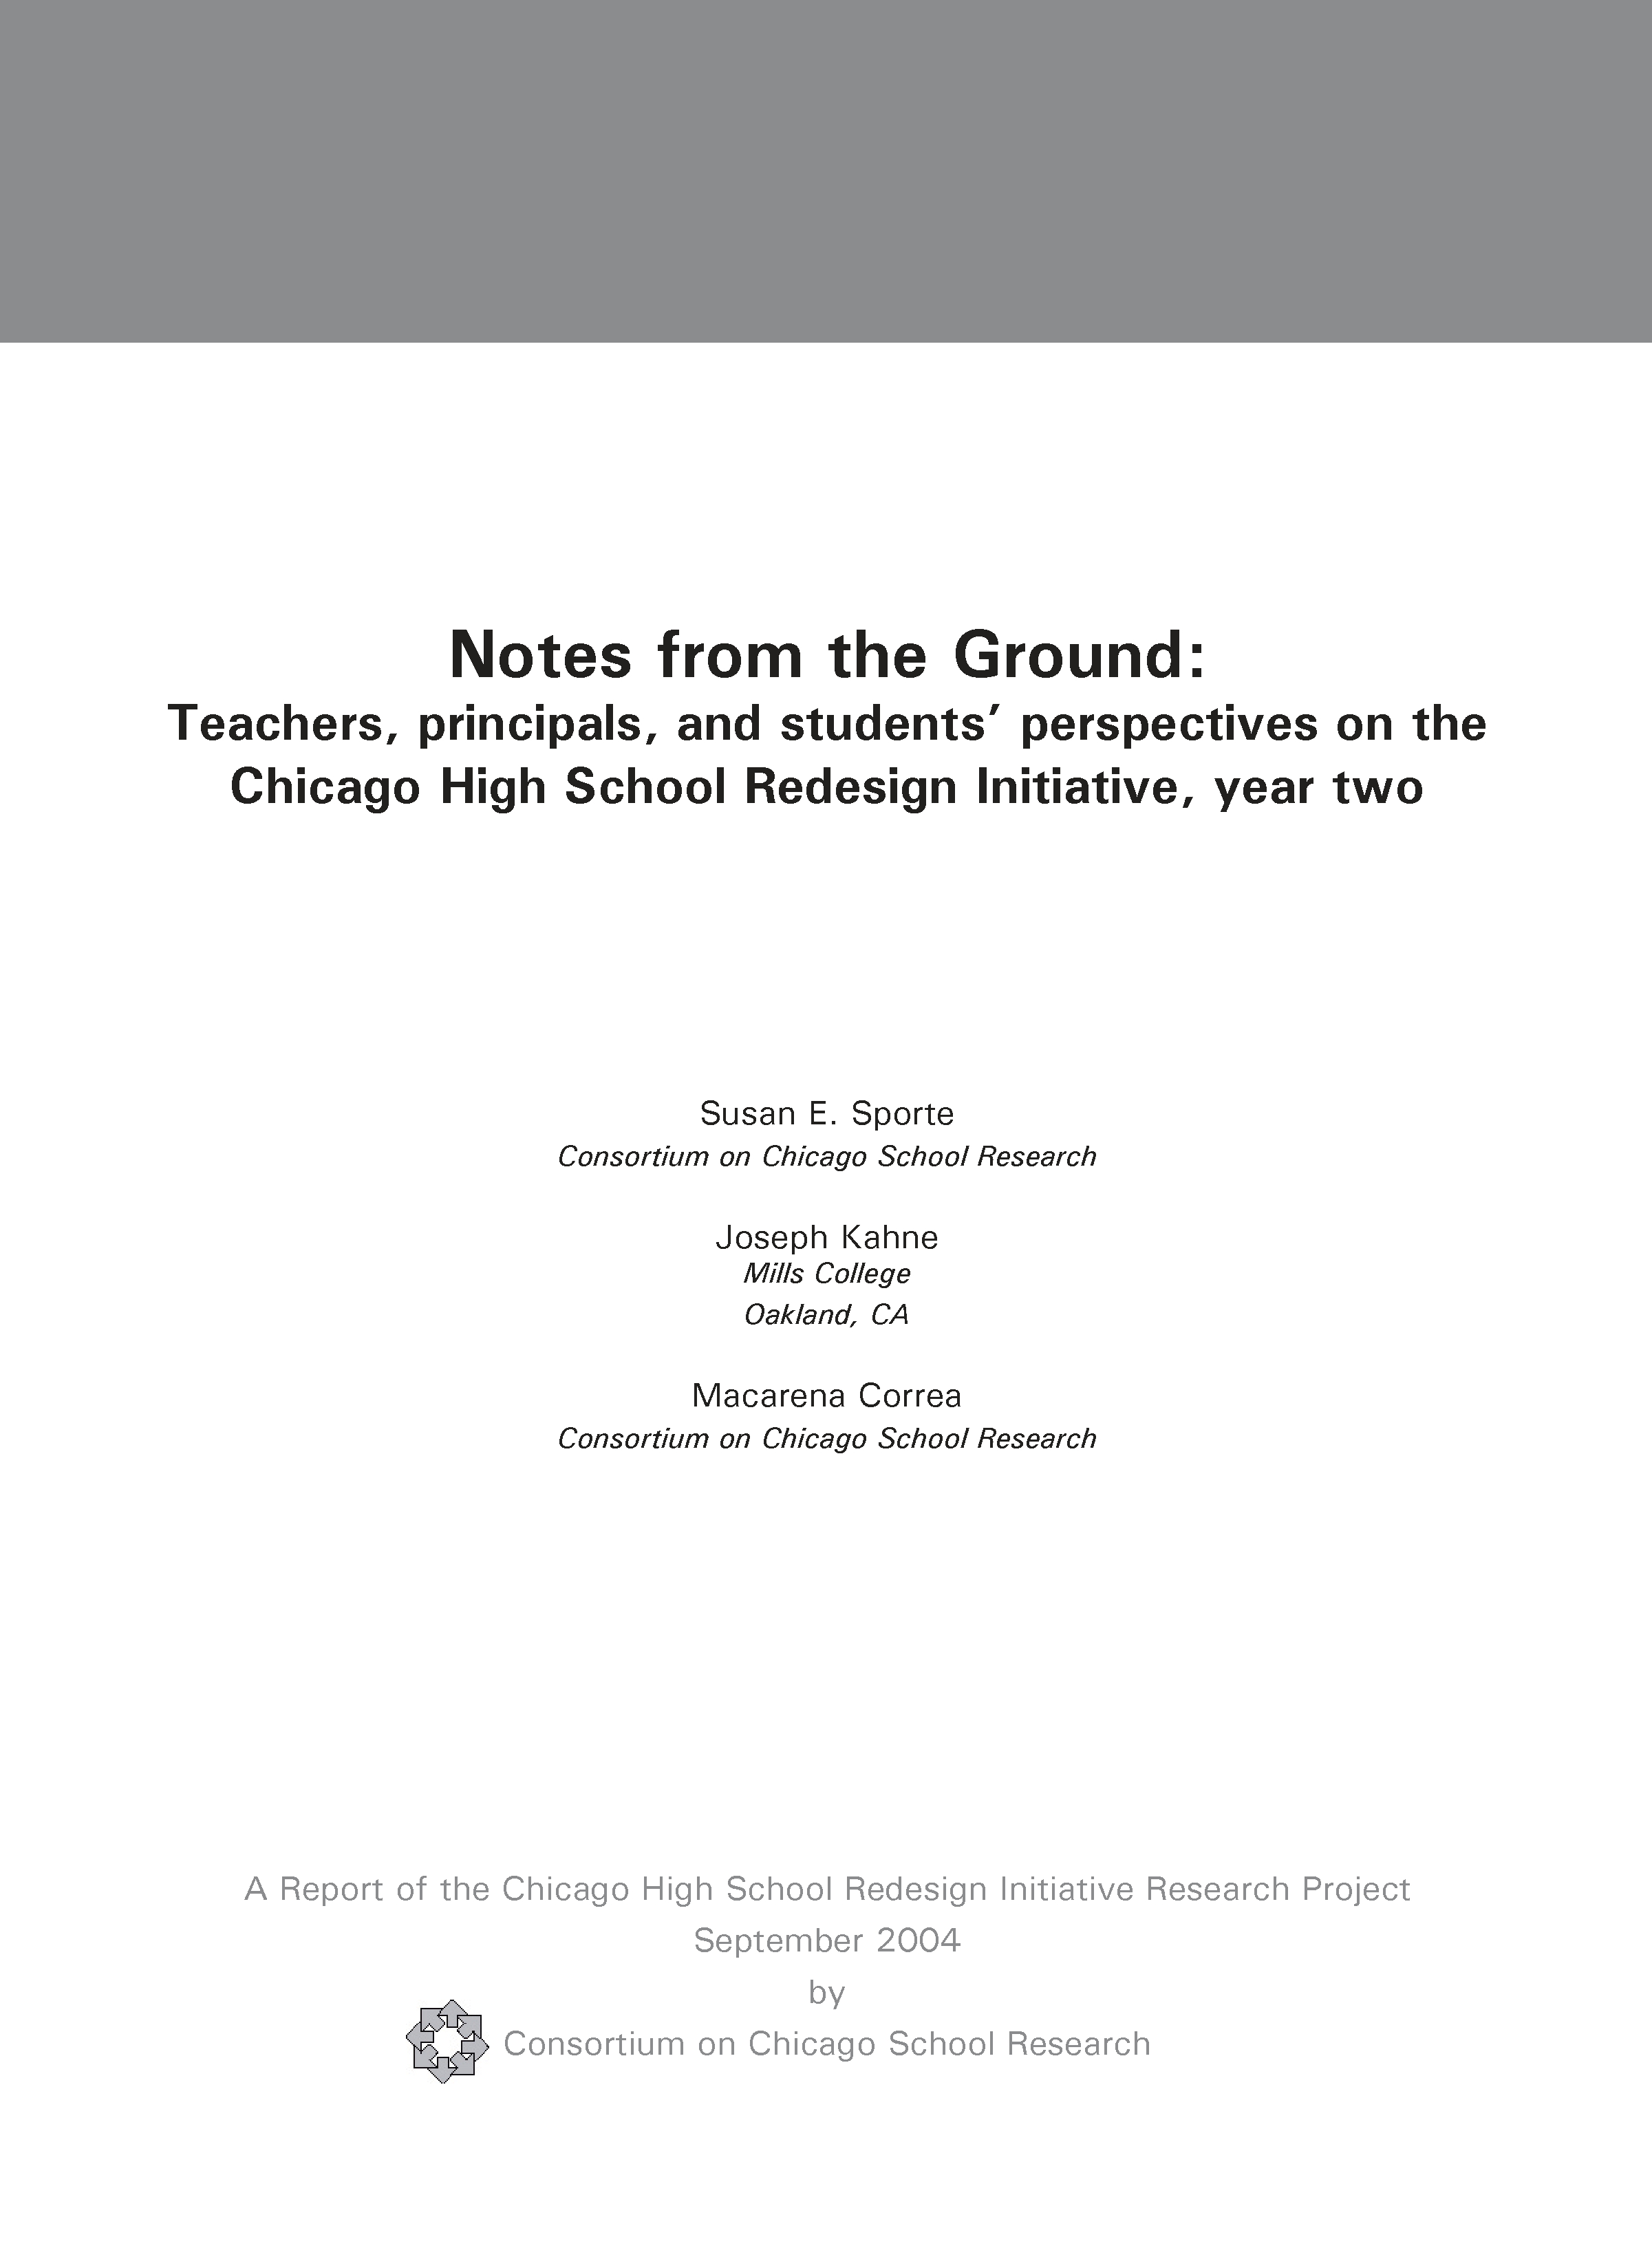 Notes from the Ground: Teachers, principals, and students' perspectives on the Chicago High School Redesign Initiative, year two